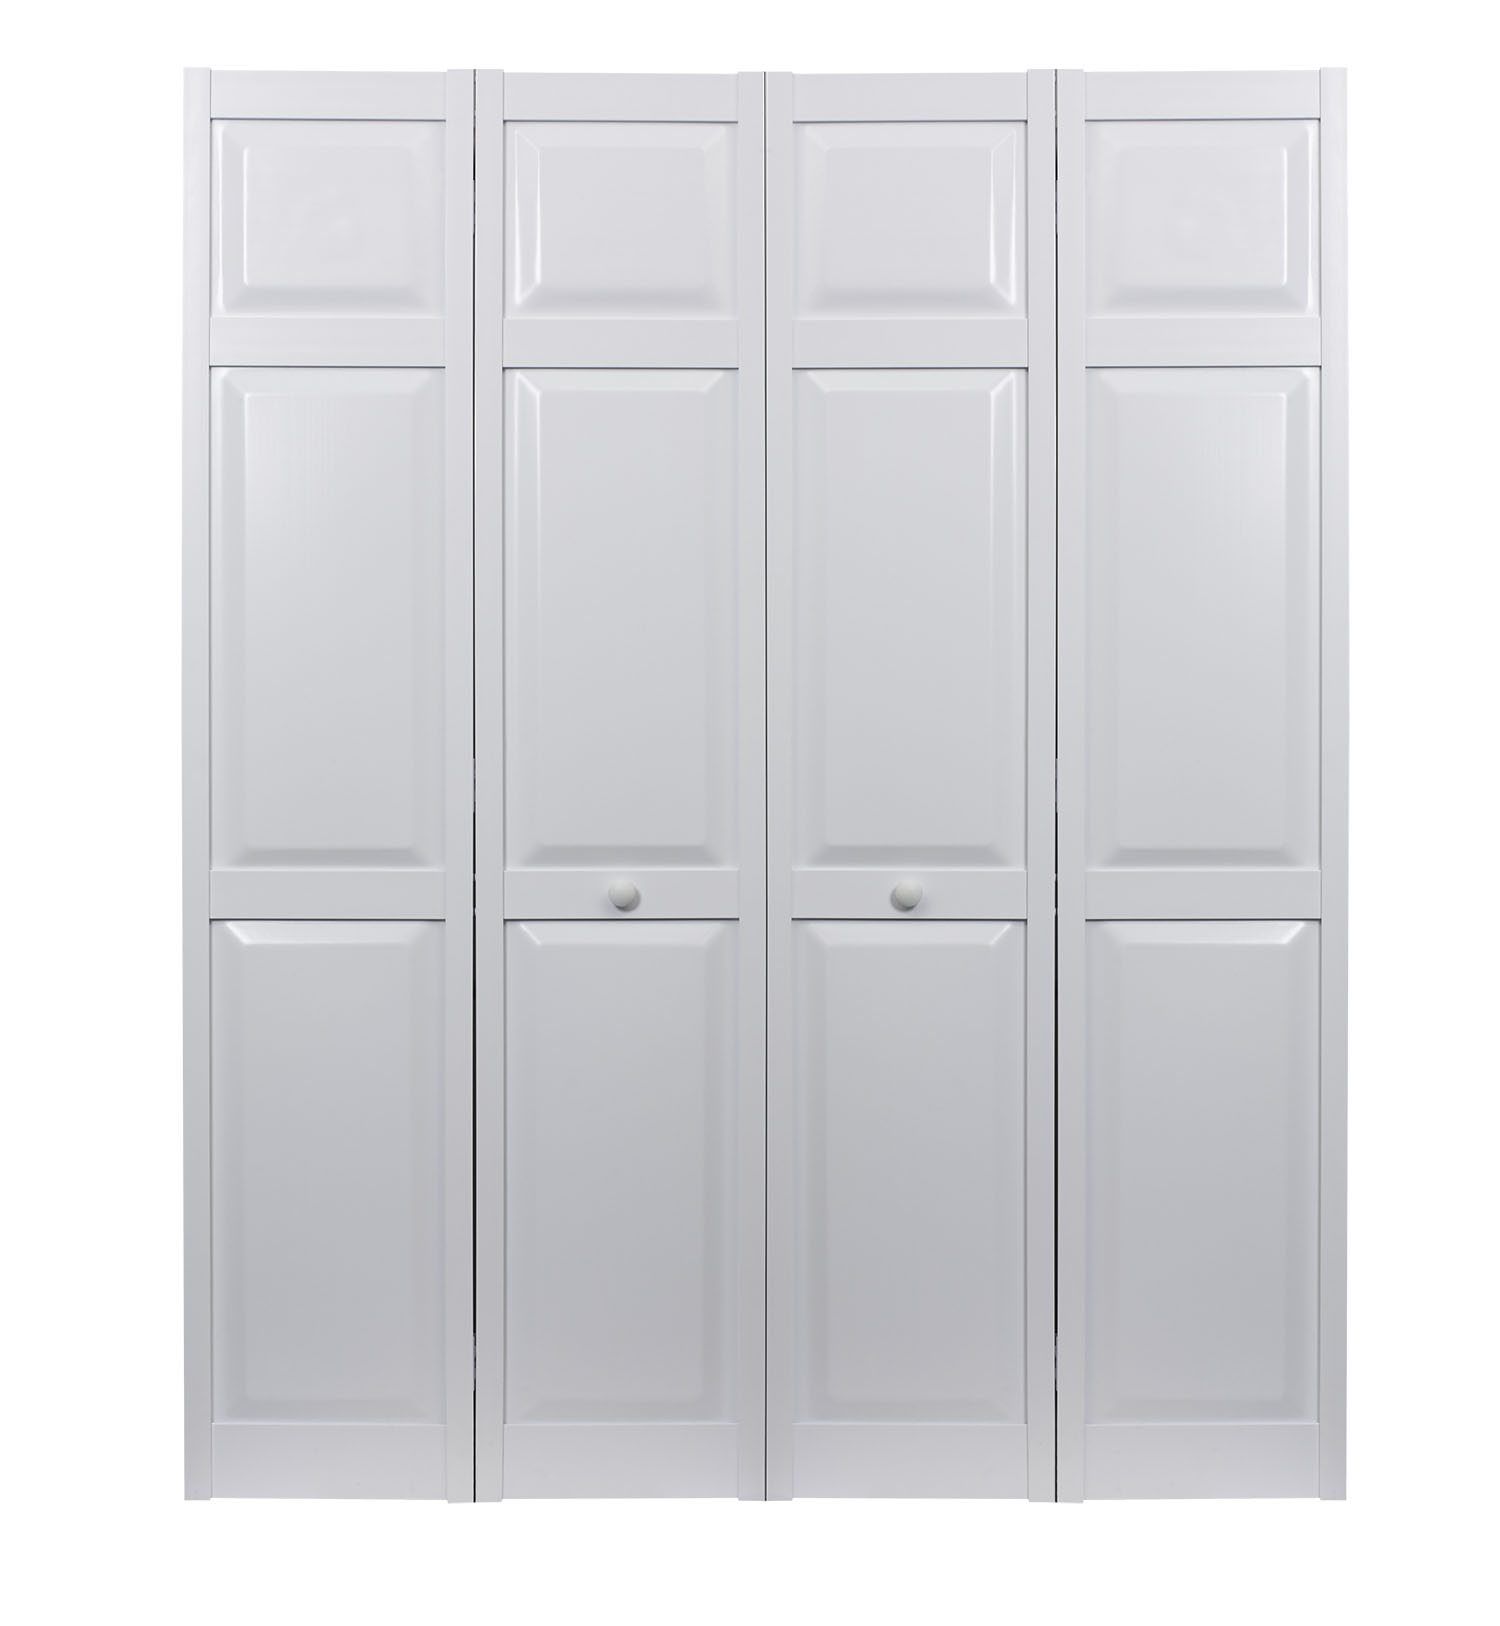 PVC bifold raised panel double door